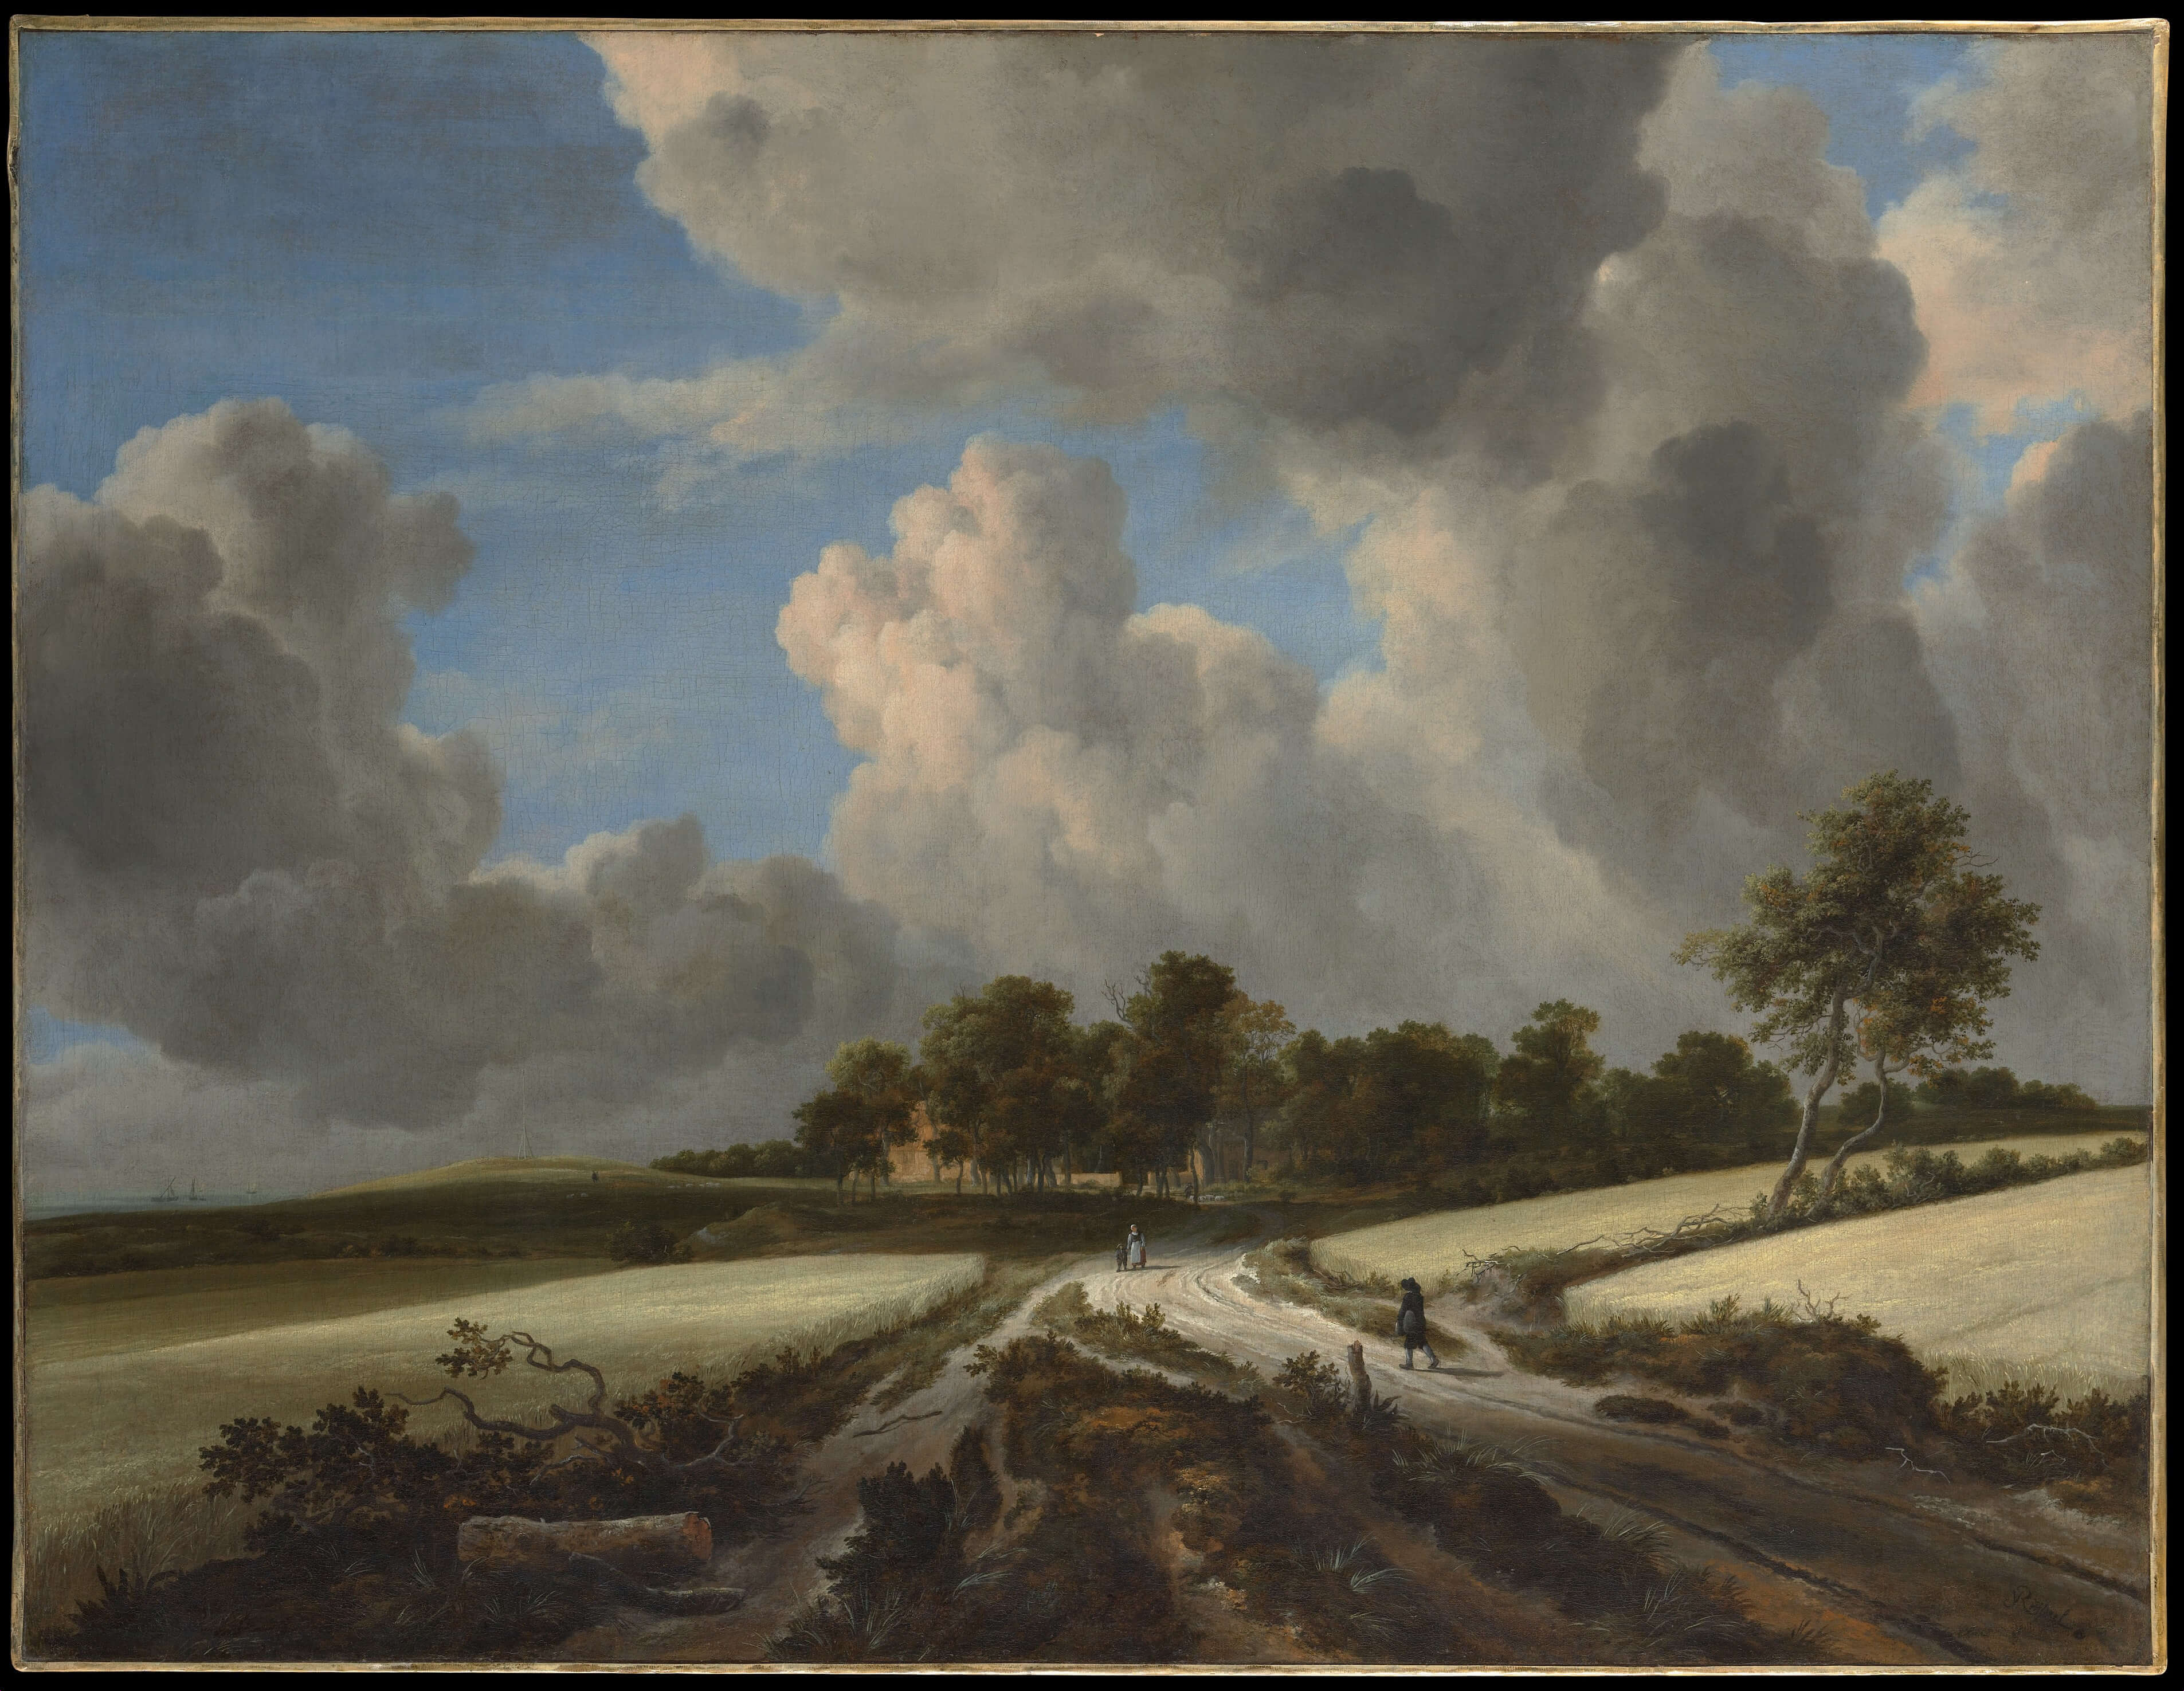 Wheat Fields by Jacob van Ruisdael